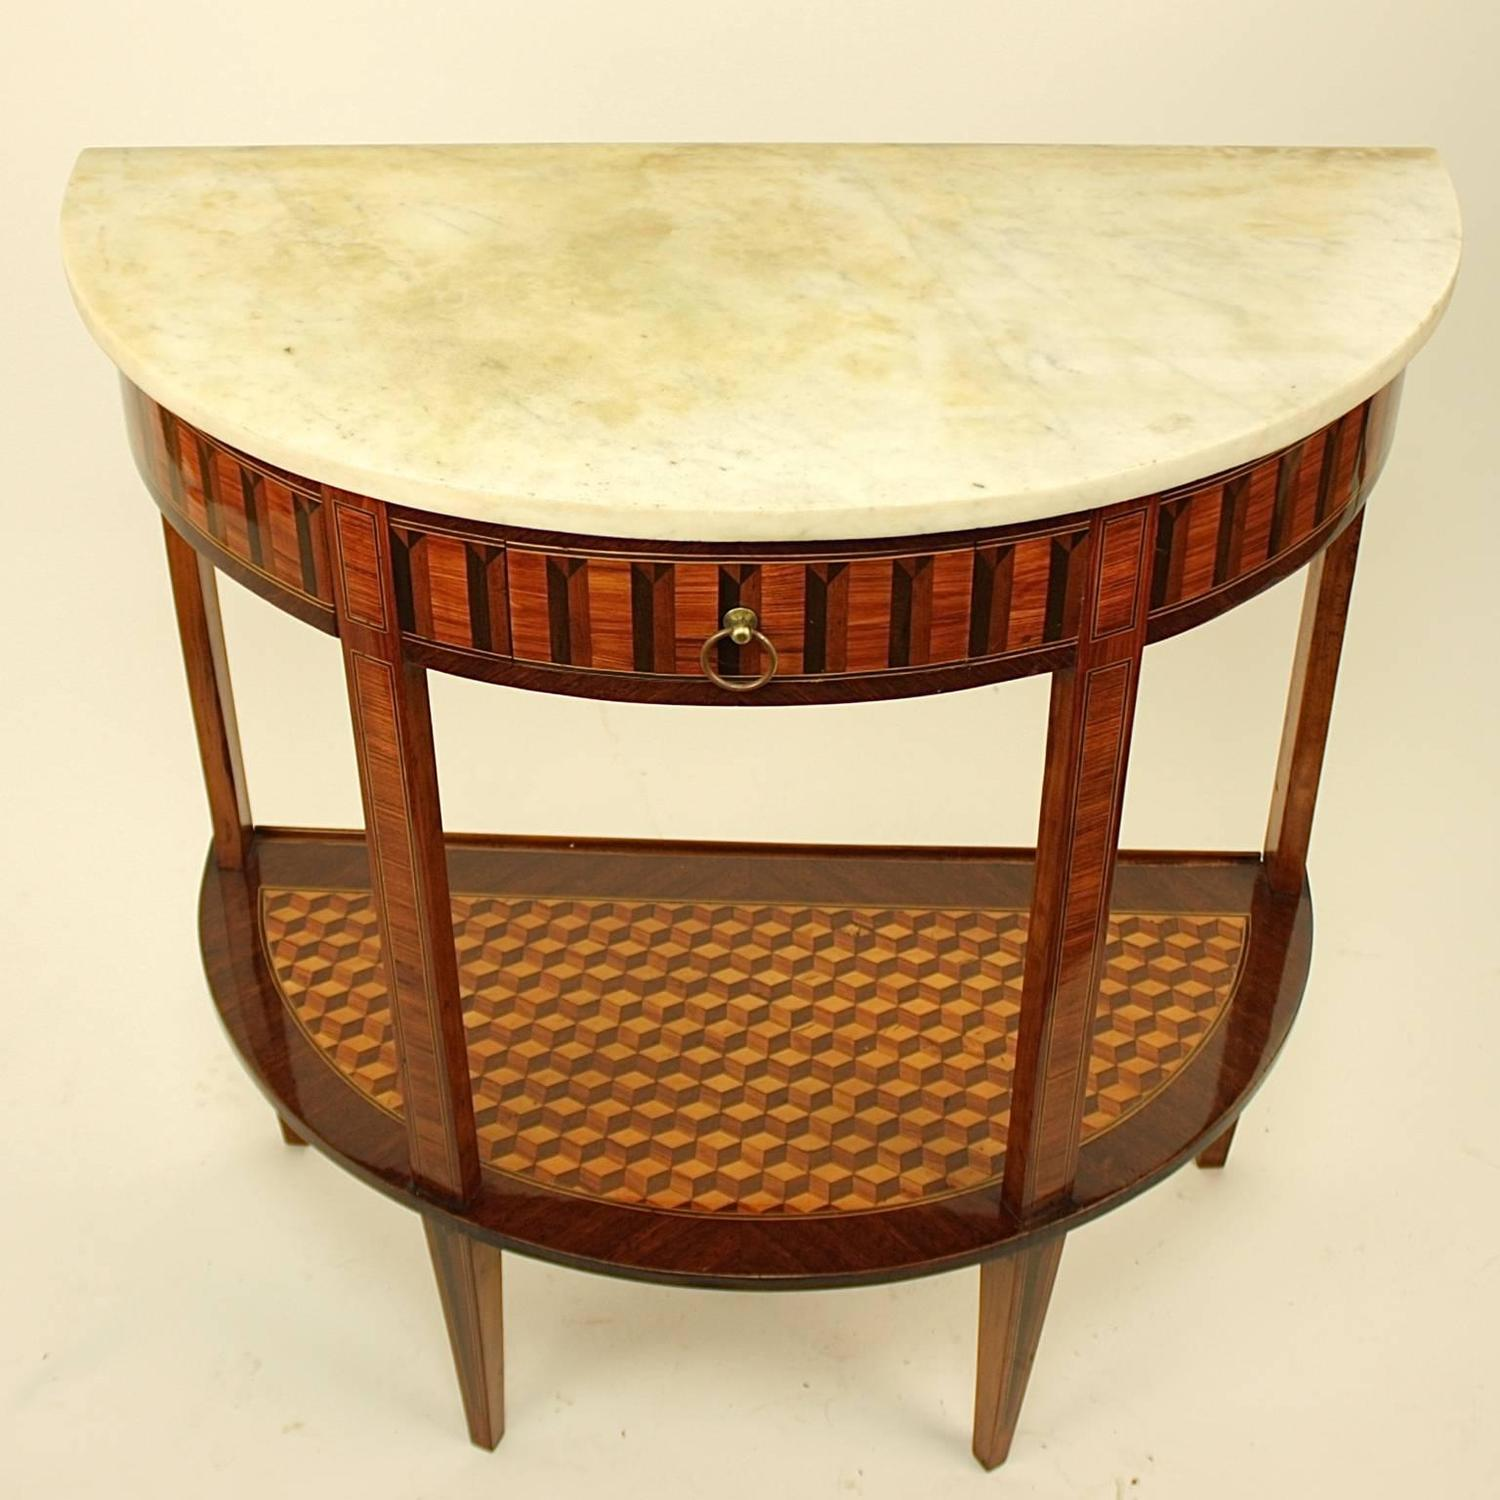 19th century marquetry inlaid demilune console table at 1stdibs White demilune console table